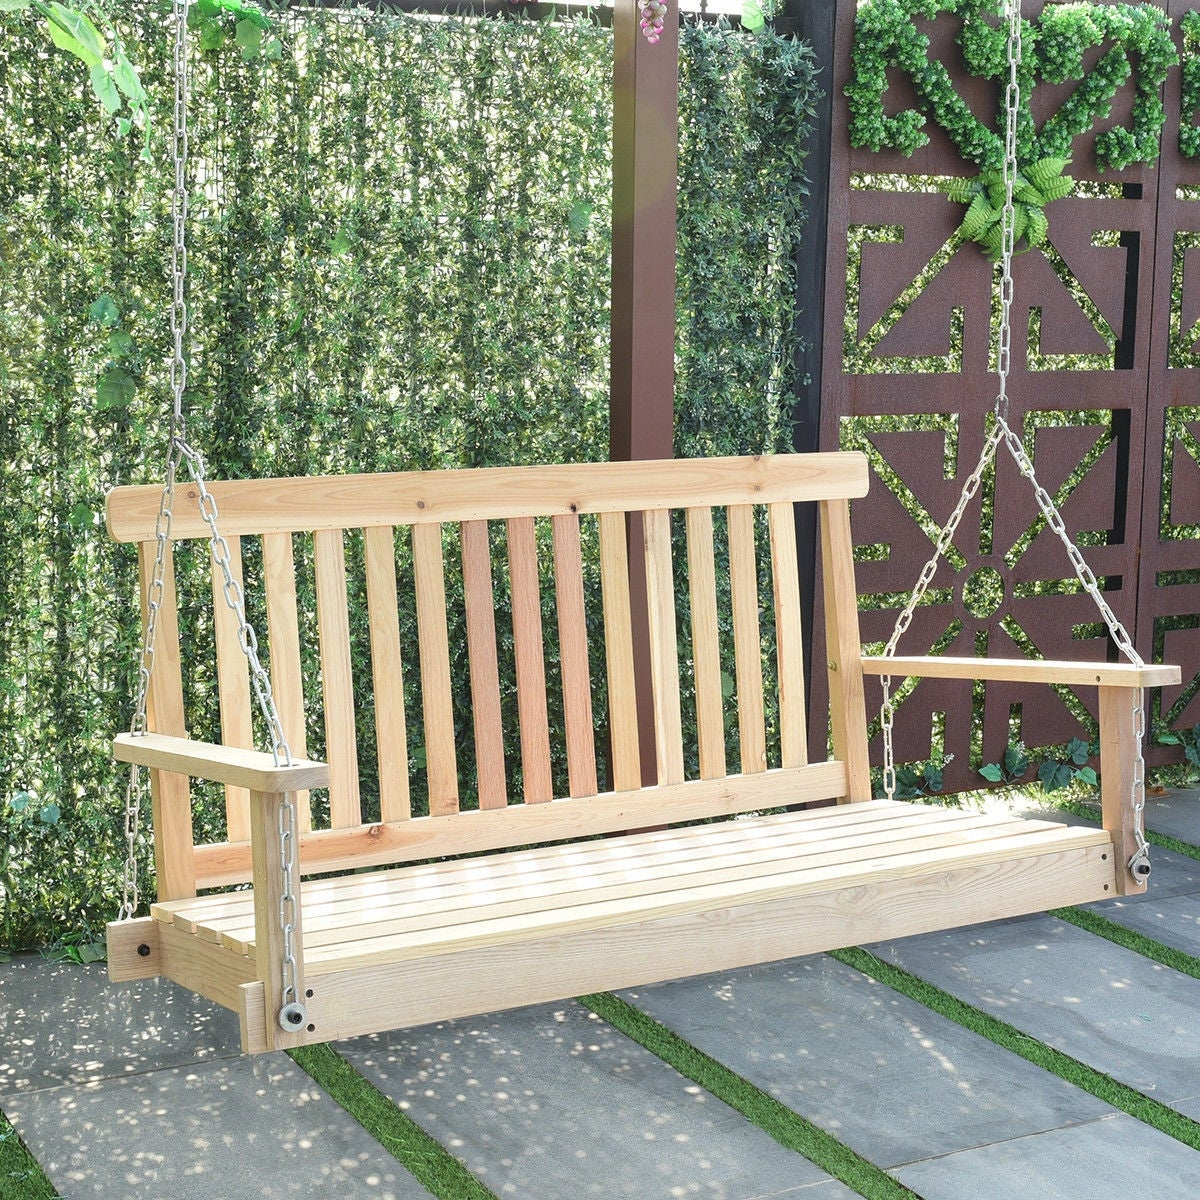 Garden Porch Swing Bench Patio Hanging Seat Chair Wooden ...